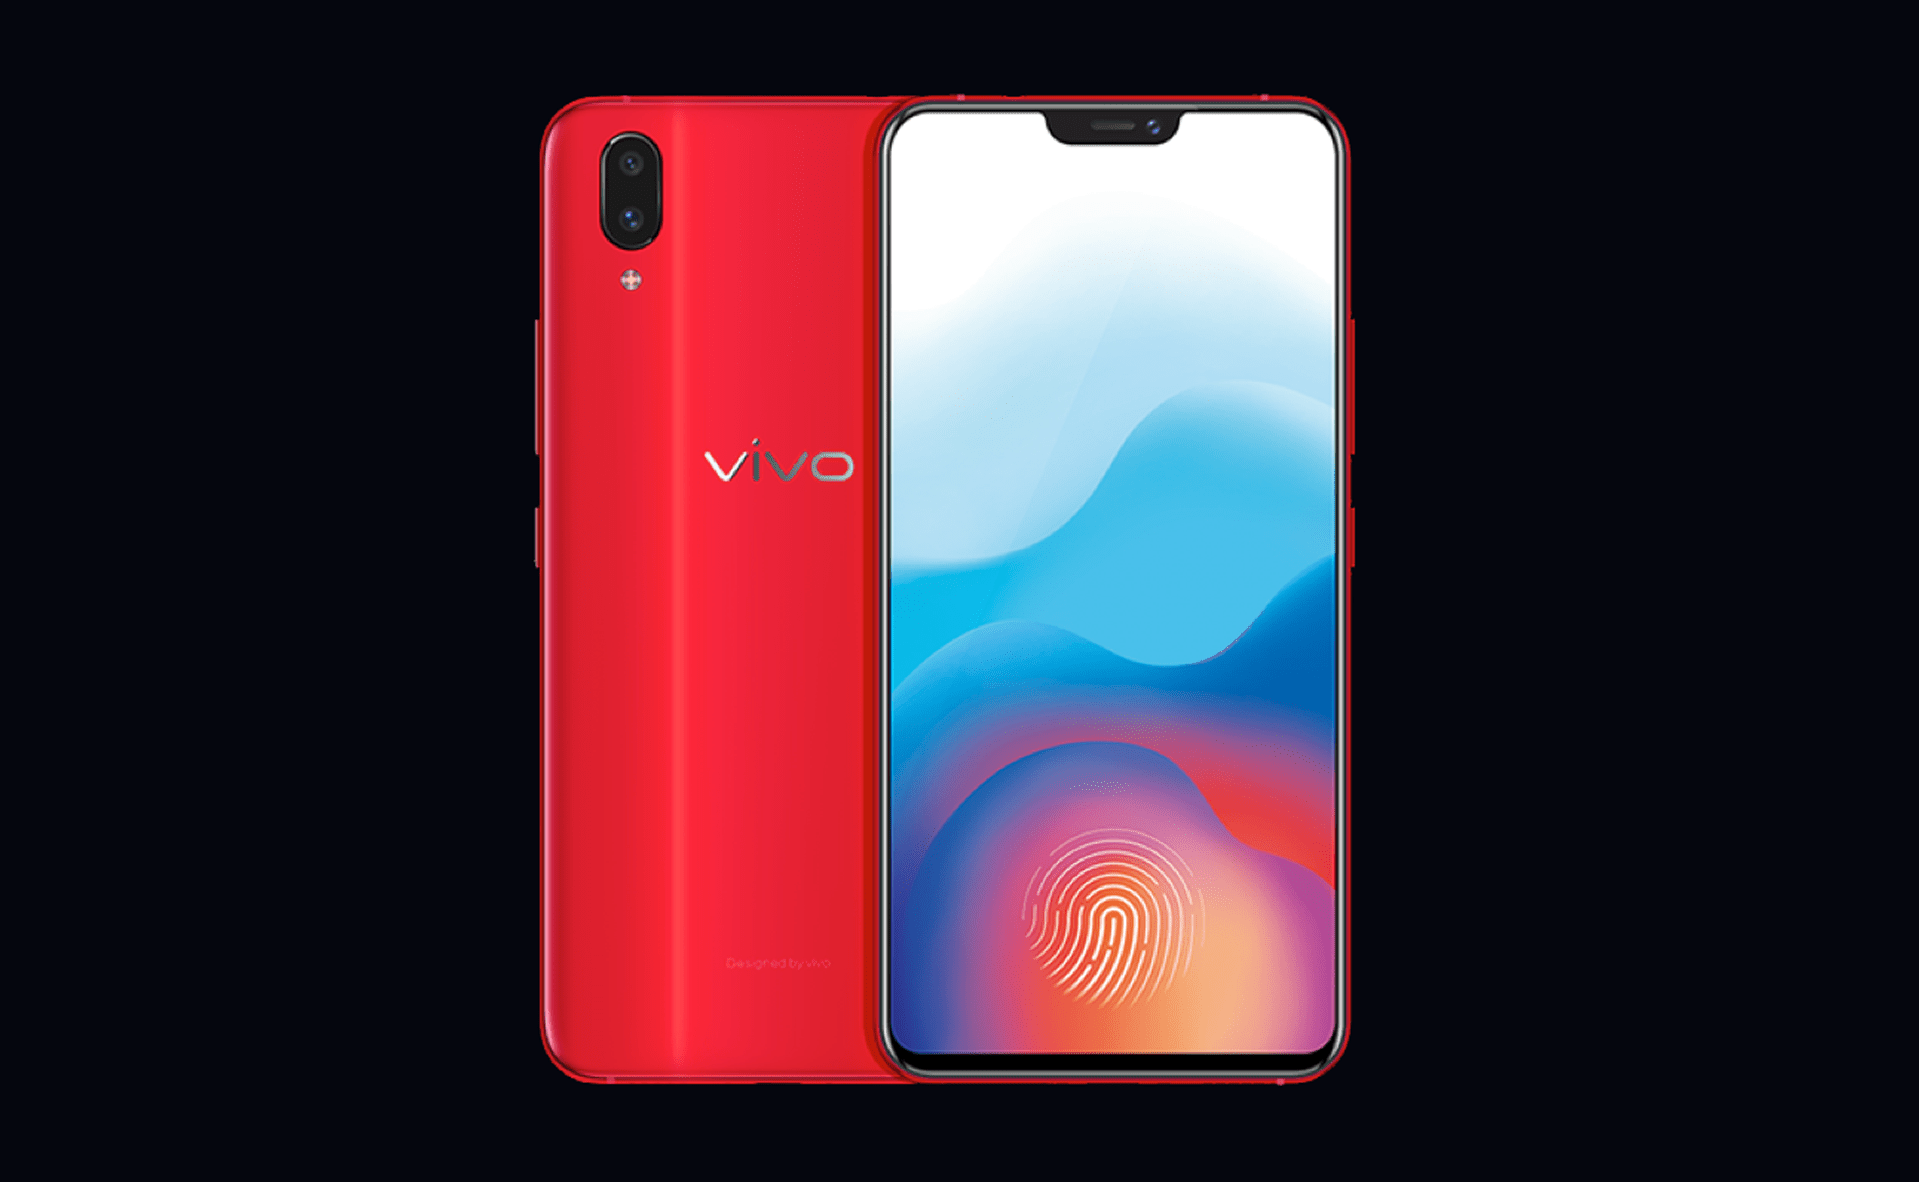 Vivo X21 and X21 UD officially launched with Snapdragon 660 & notch design 1